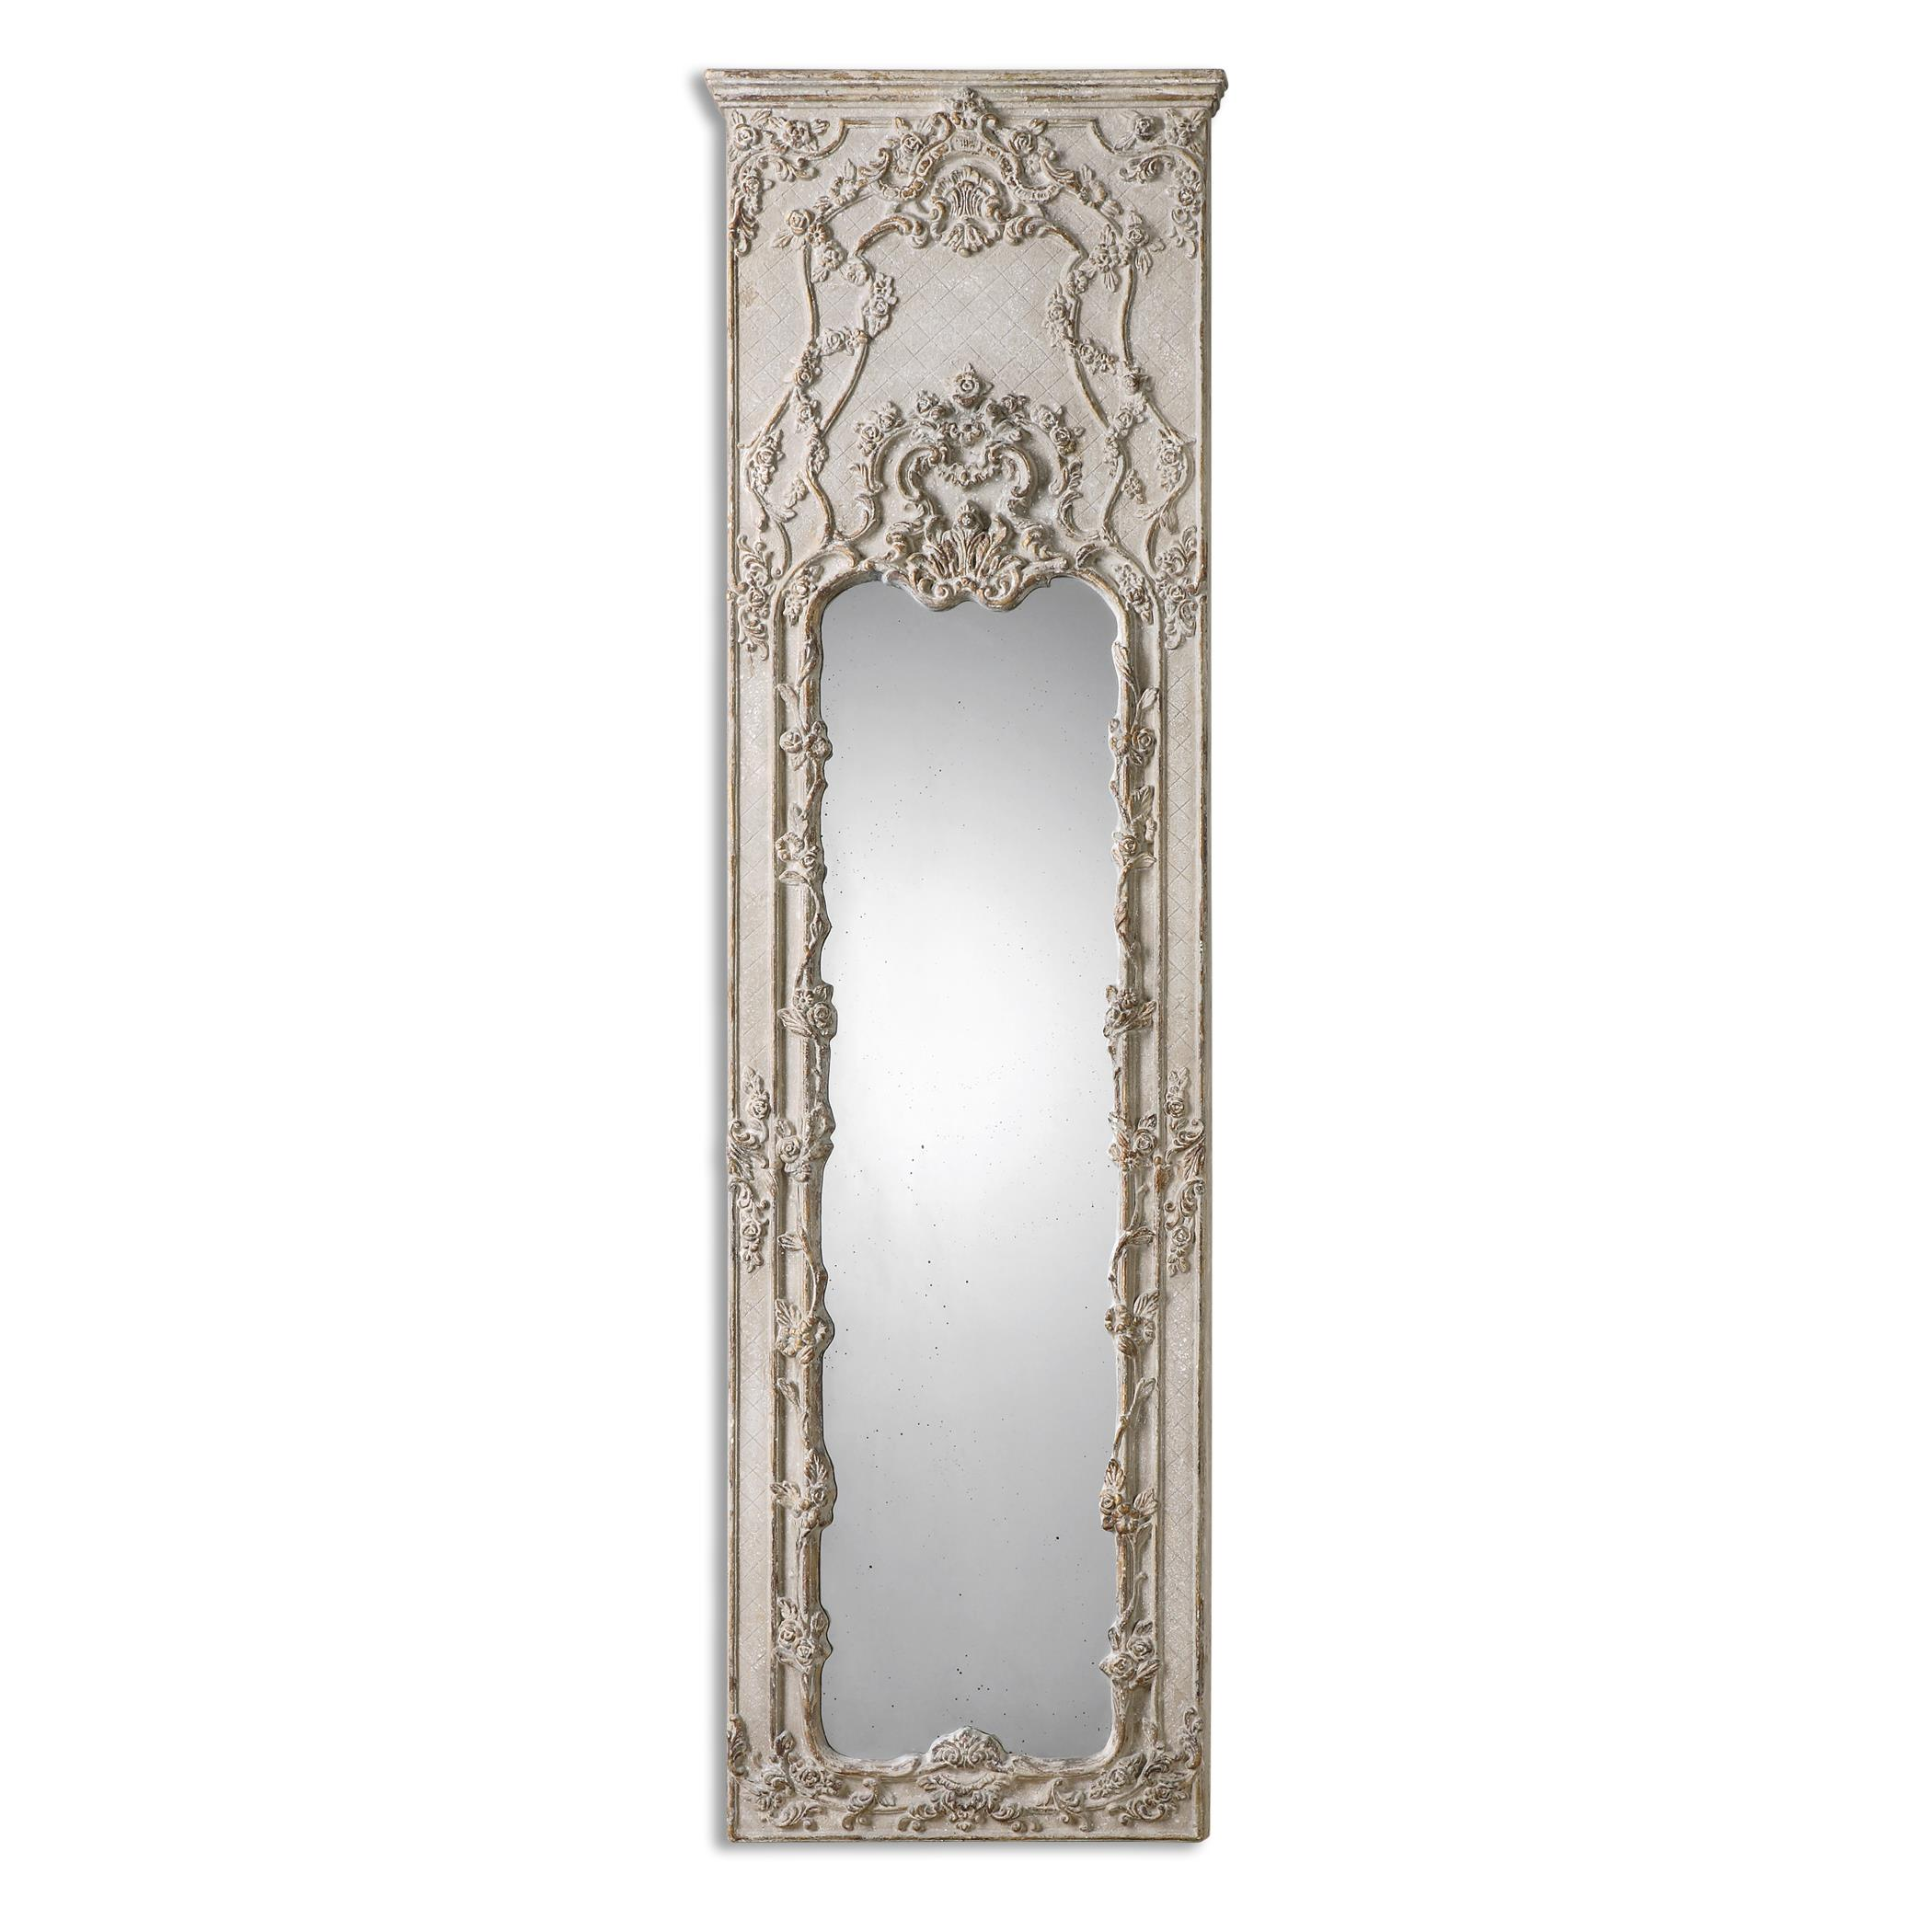 Uttermost Mirrors Castellana Gray-Ivory Leaner Mirror - Item Number: 13914